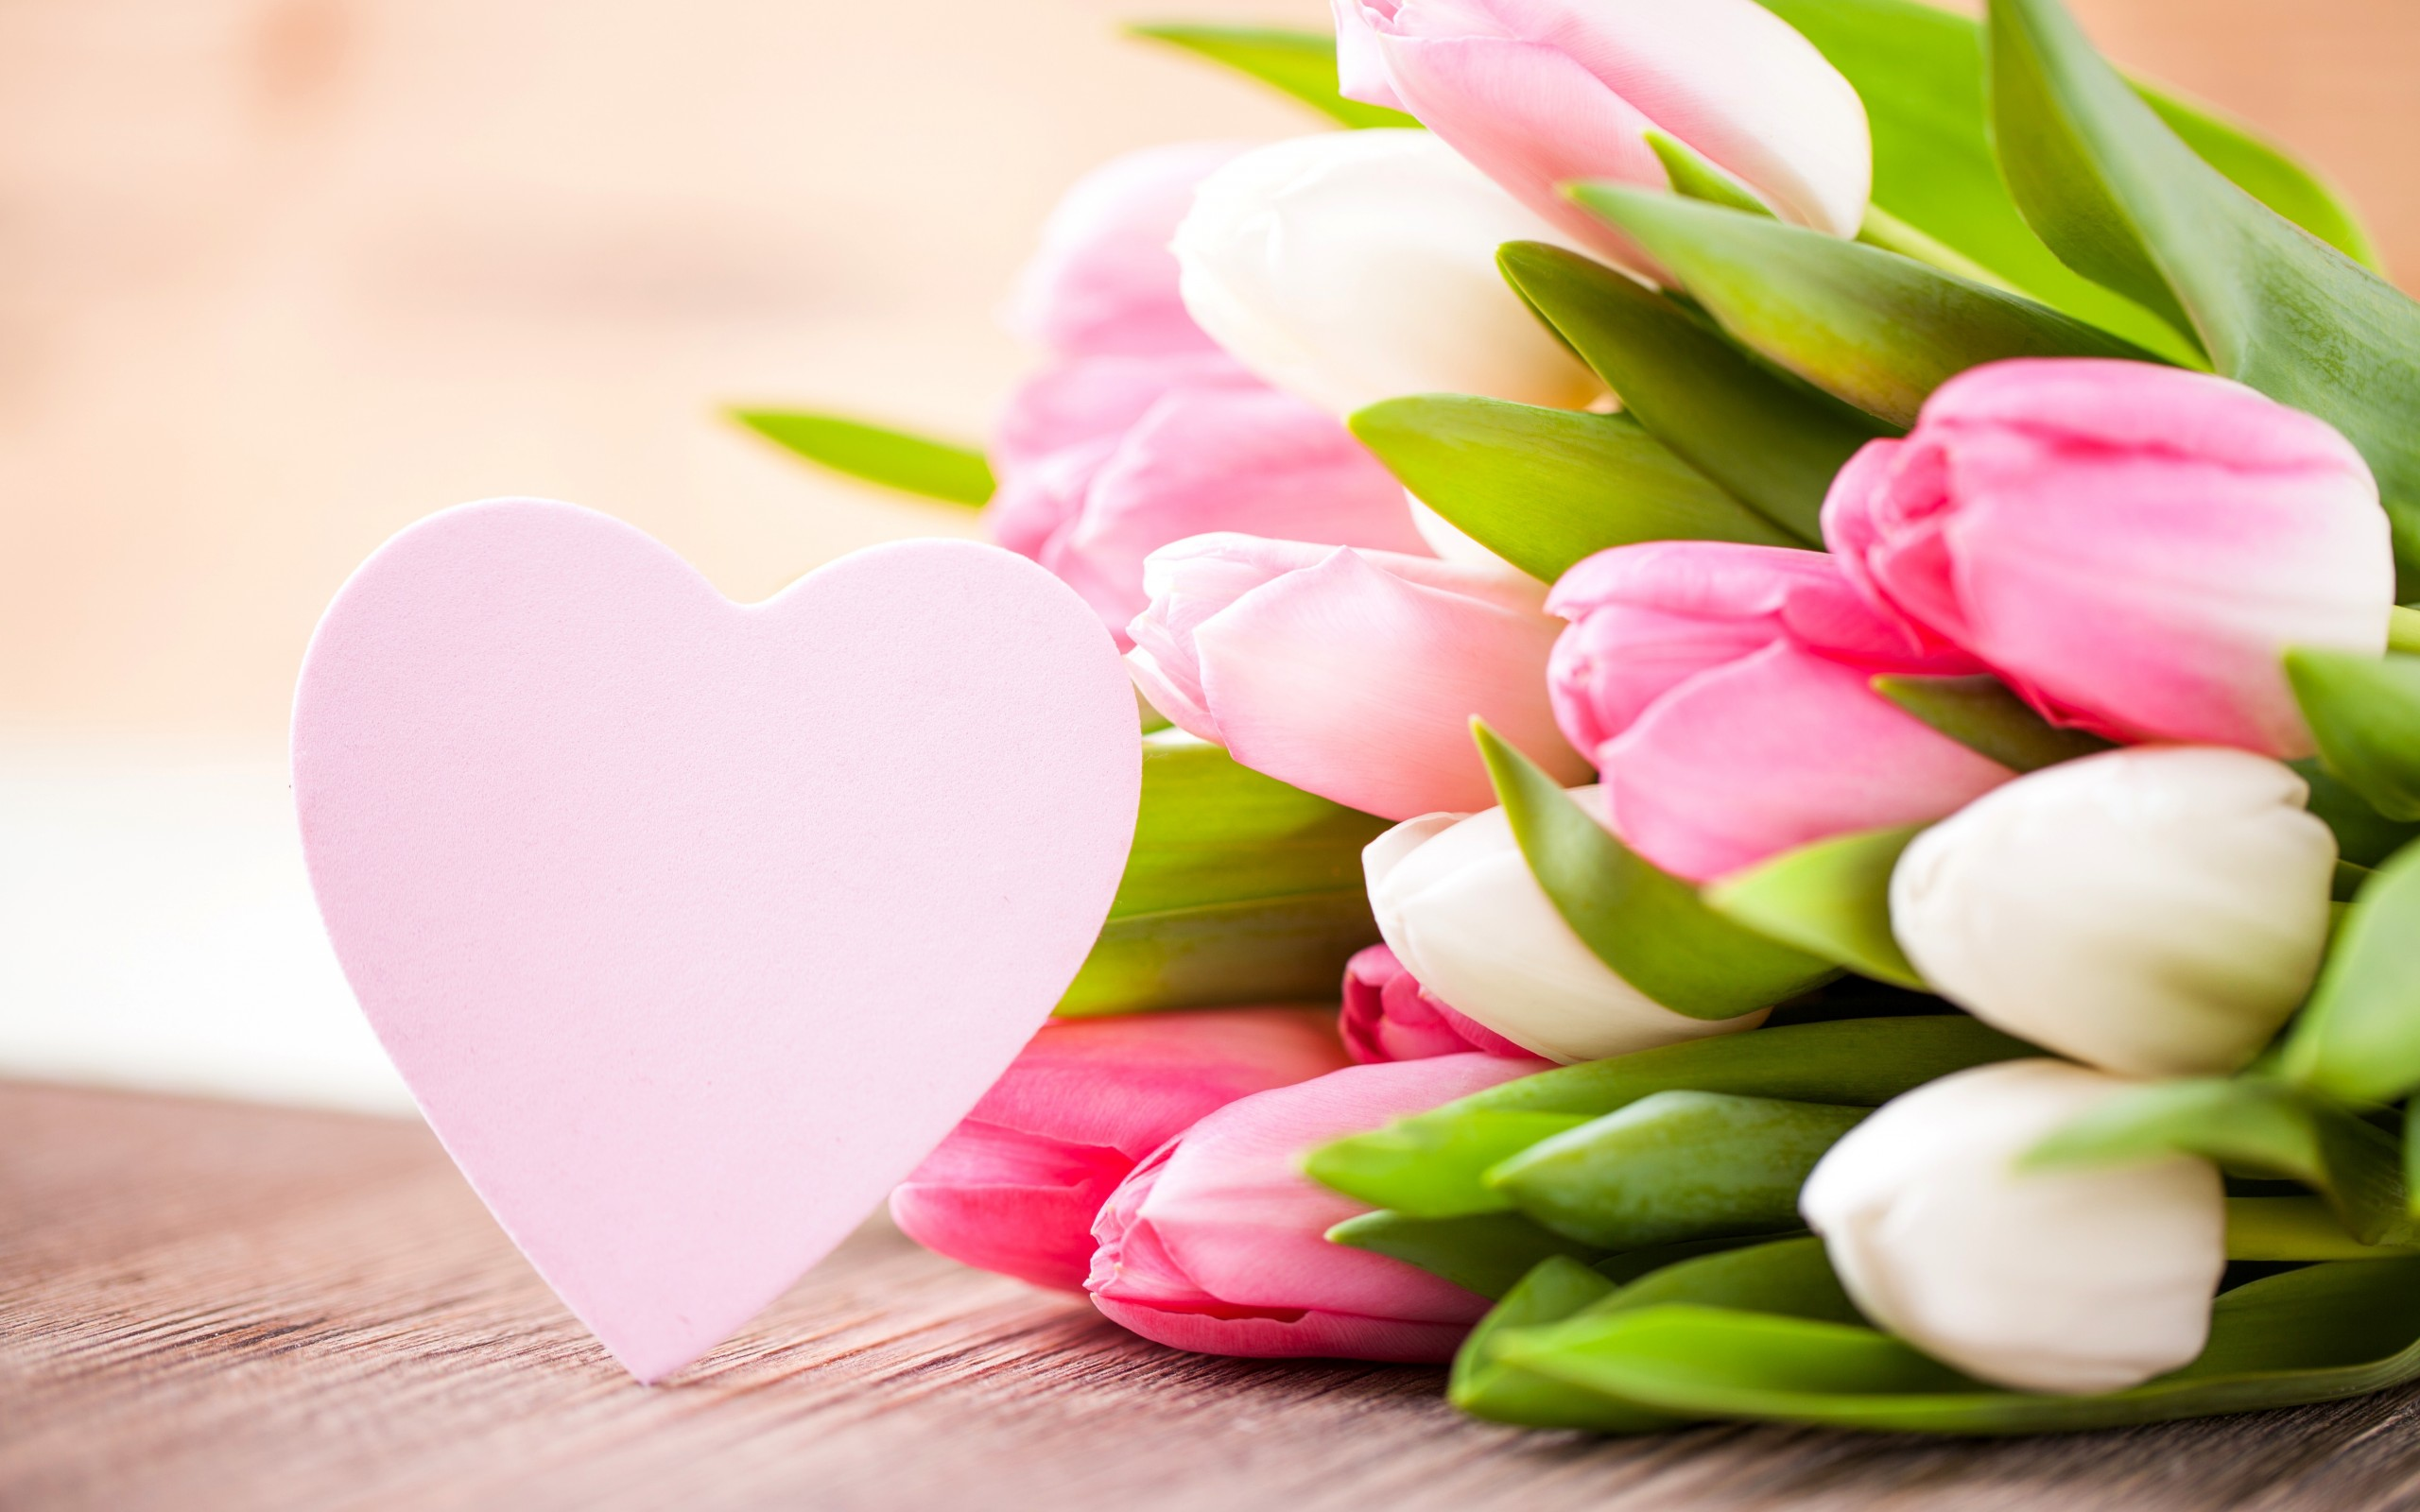 Tulips Pink Flower And Heart Wallpapers 2560x1600 426025